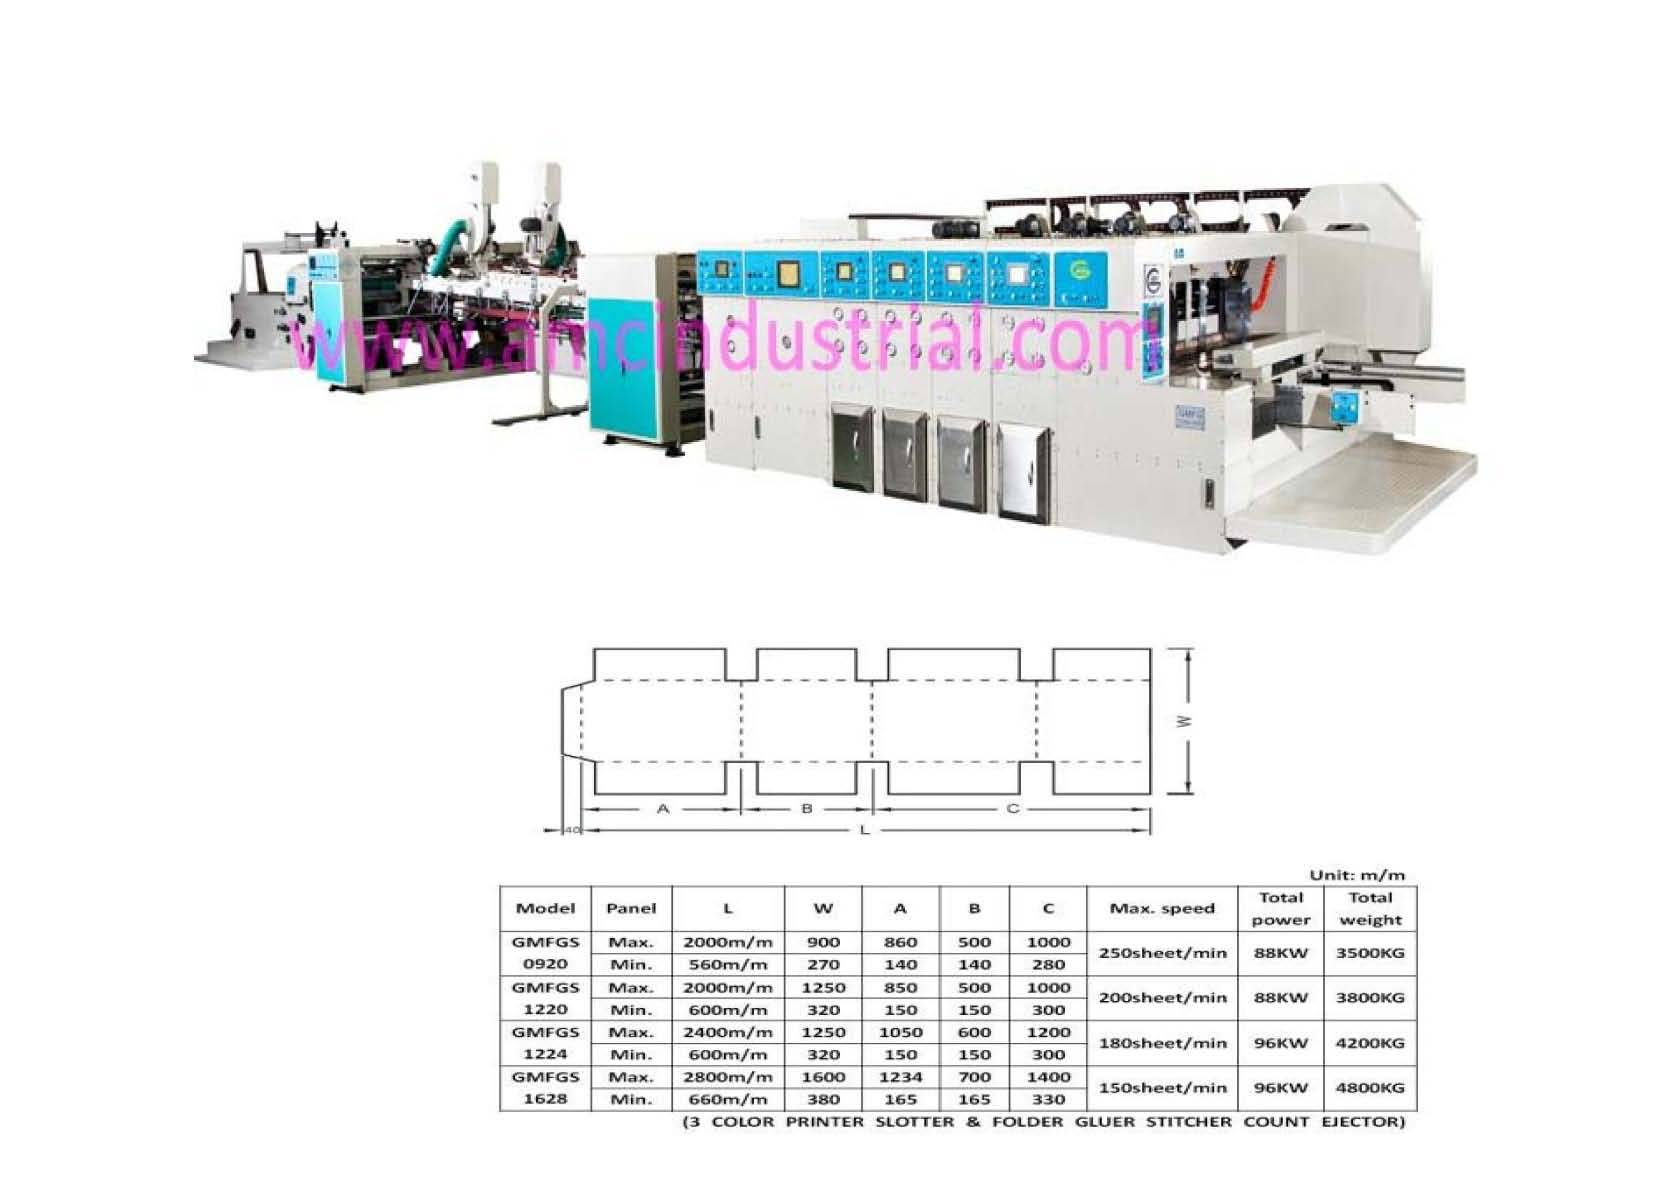 GMFG Flexo Printer Slotter Die cutter & Folder Gluer Stitcher Count Ejector Strapping Machine